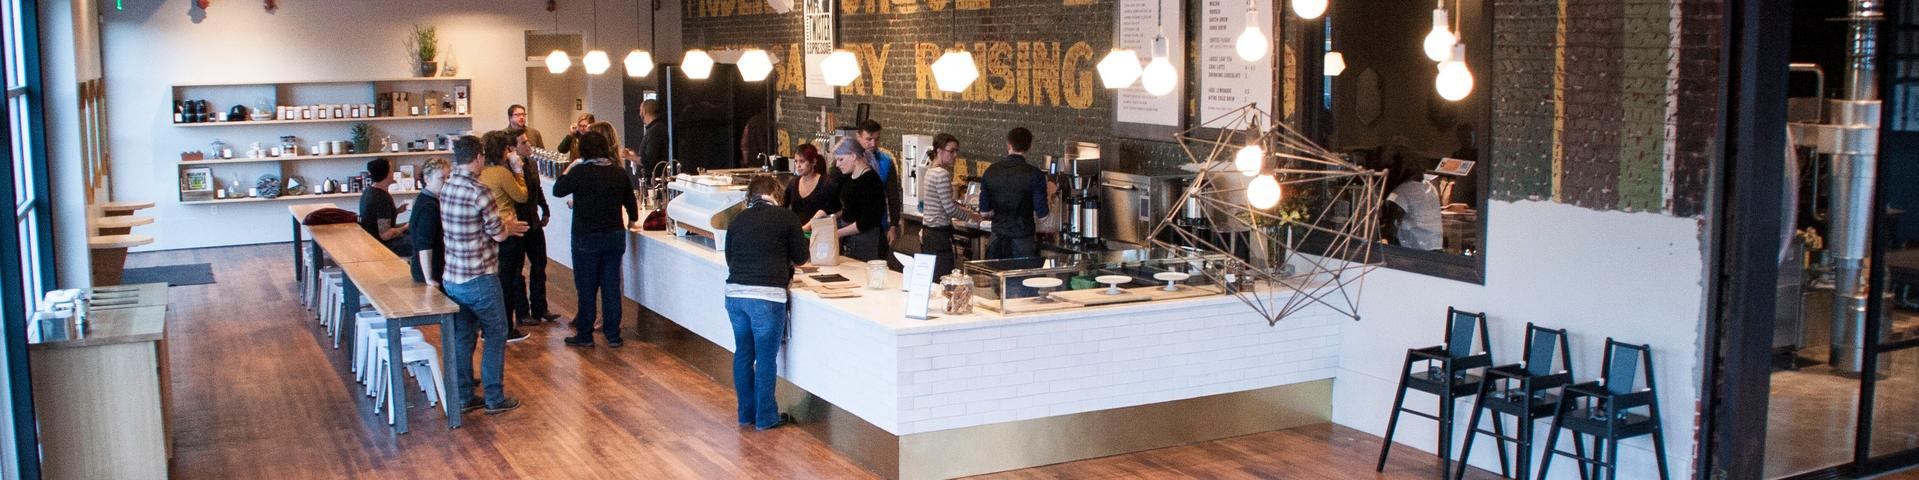 Allegro Coffee Company - Retail Design Portal